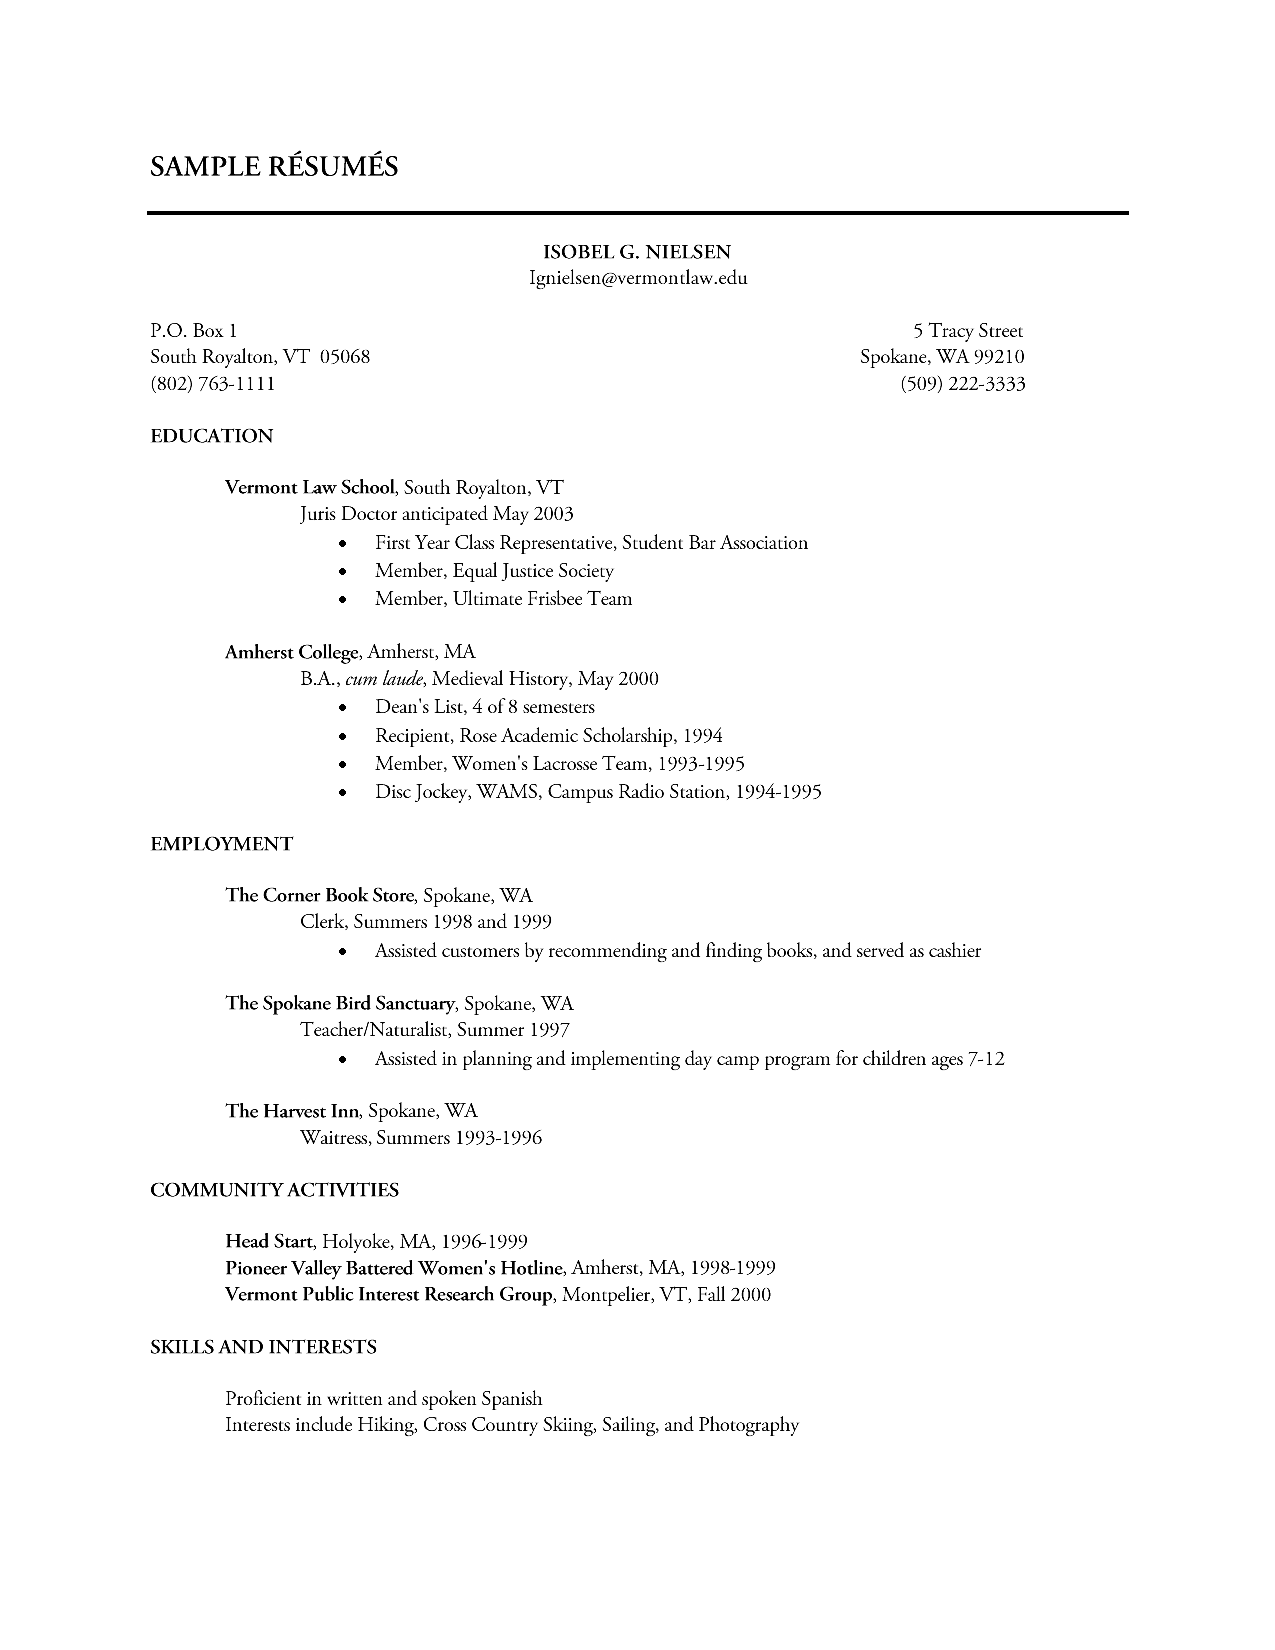 Work Resume Template Sample Resume Showing Volunteer Work  Resume Sample Volunteer Ngo